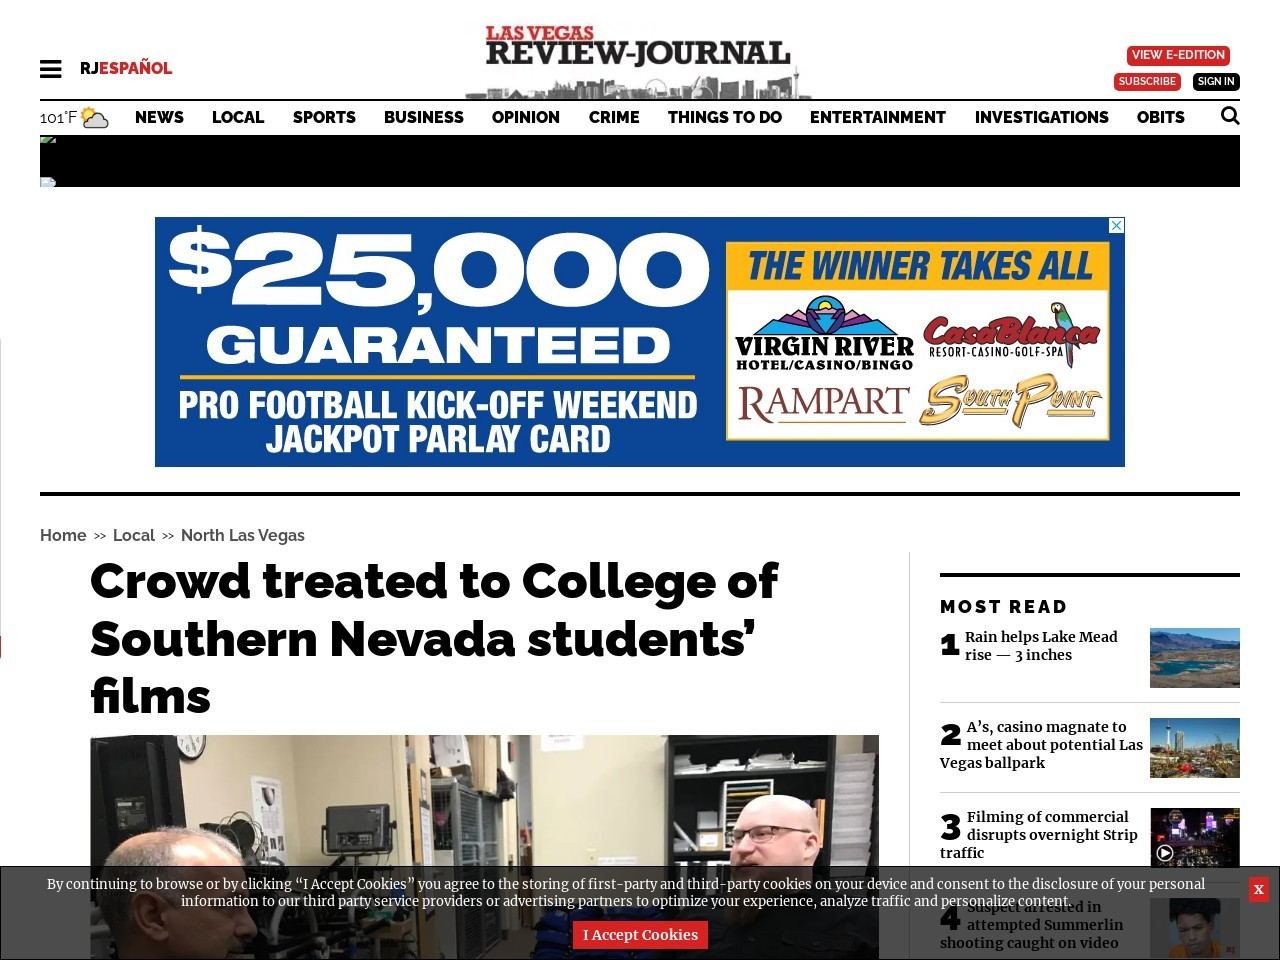 Crowd treated to College of Southern Nevada students' films